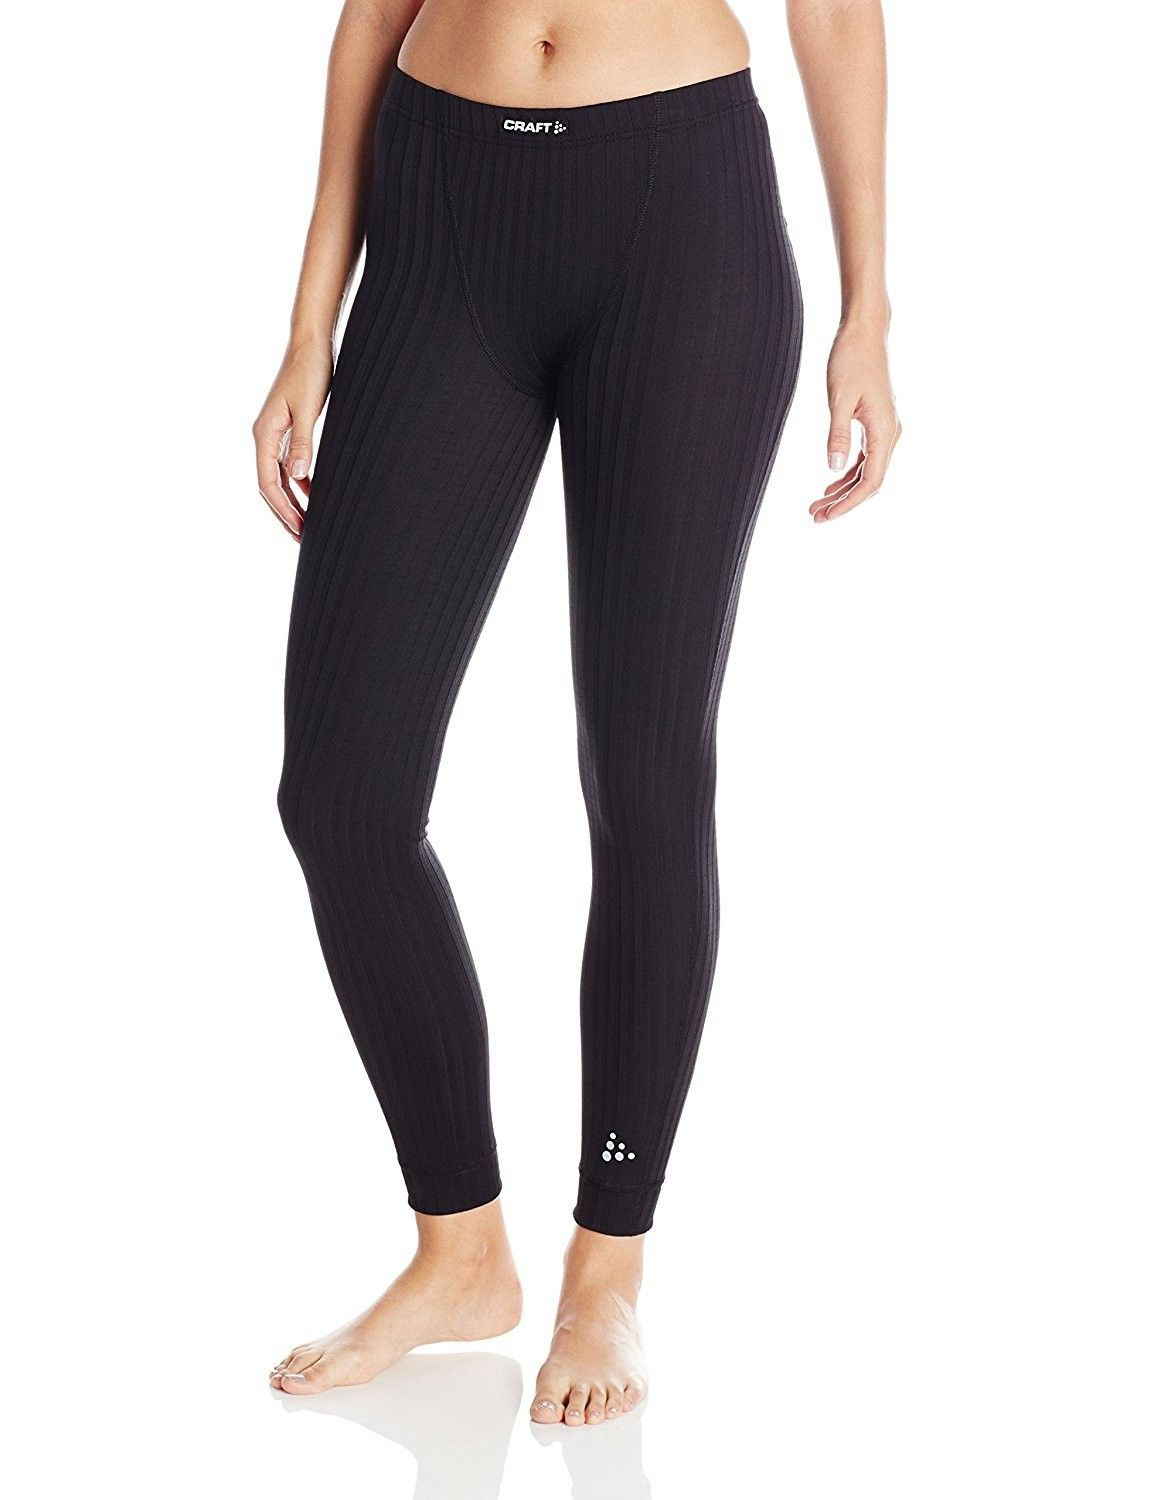 Women's Clothing, Active, Active Base Layers, Women's Active Extreme Base  Layer Pants - Black/Platinum -… | Workout pants black, Active wear for women,  Active women